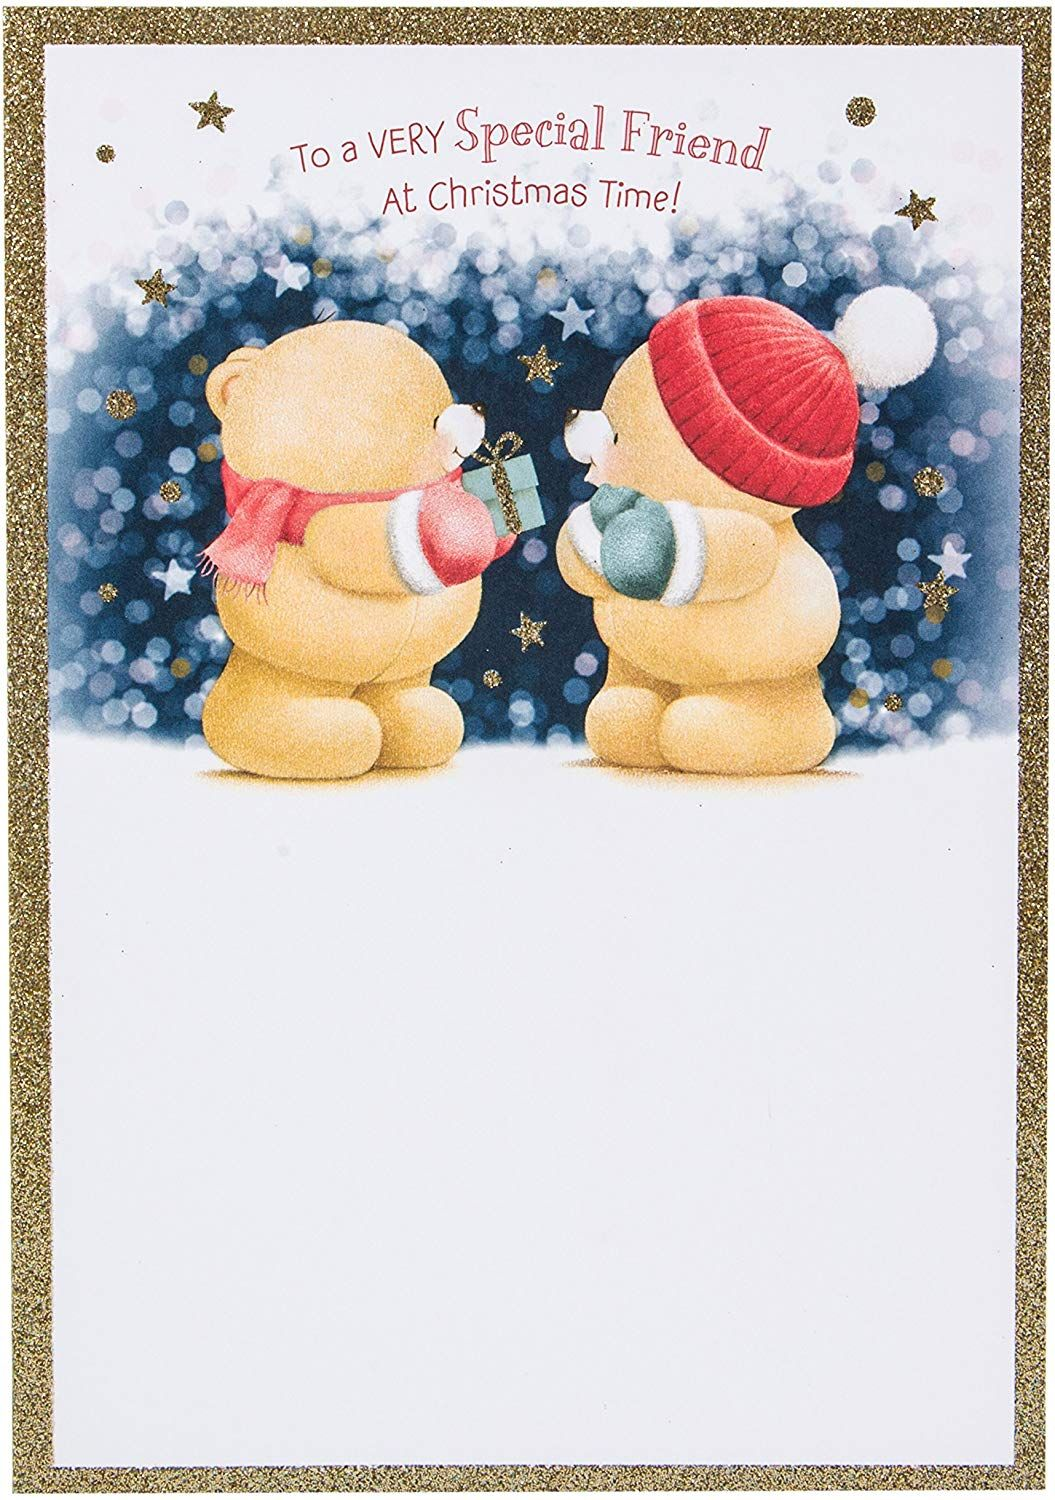 Hallmark Forever Friends Christmas Card To A Very Special Friend Medium Amazon Co Uk Office Product In 2020 Friend Christmas Hello Kitty Christmas Special Friend